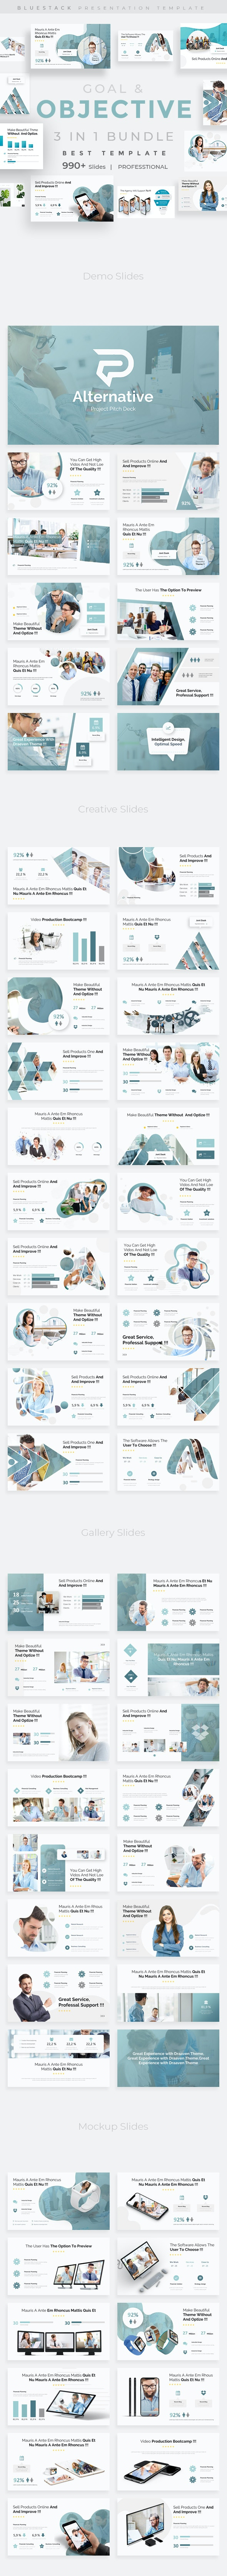 3 in 1 Goals Objectives Bundle Pitch Deck Keynote Template - Creative Keynote Templates